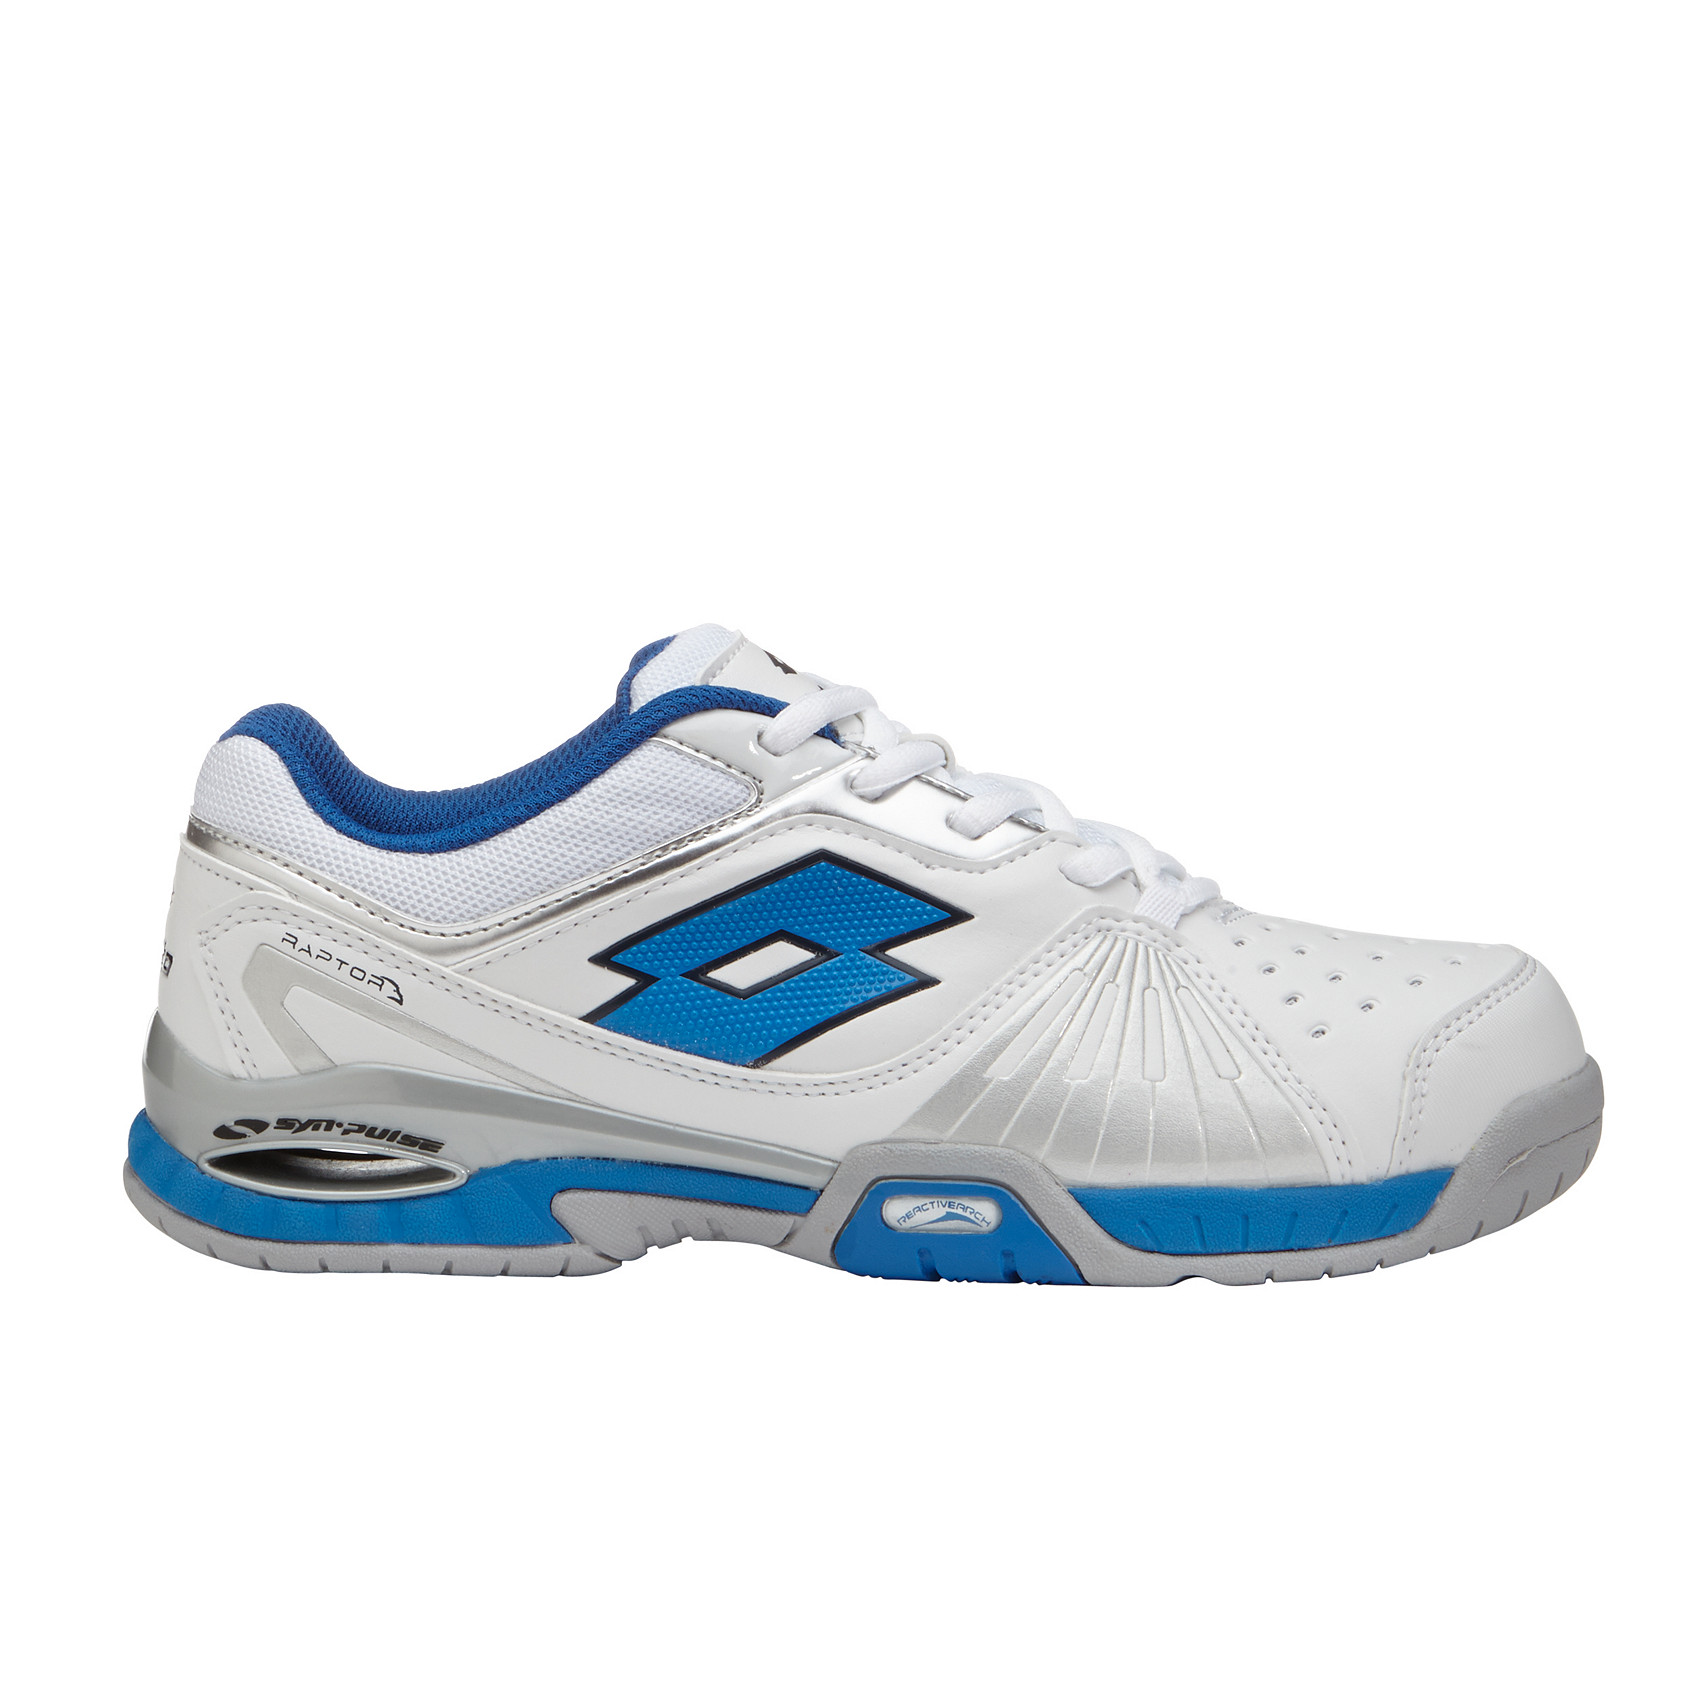 Lotto Tennis Shoes For Sale